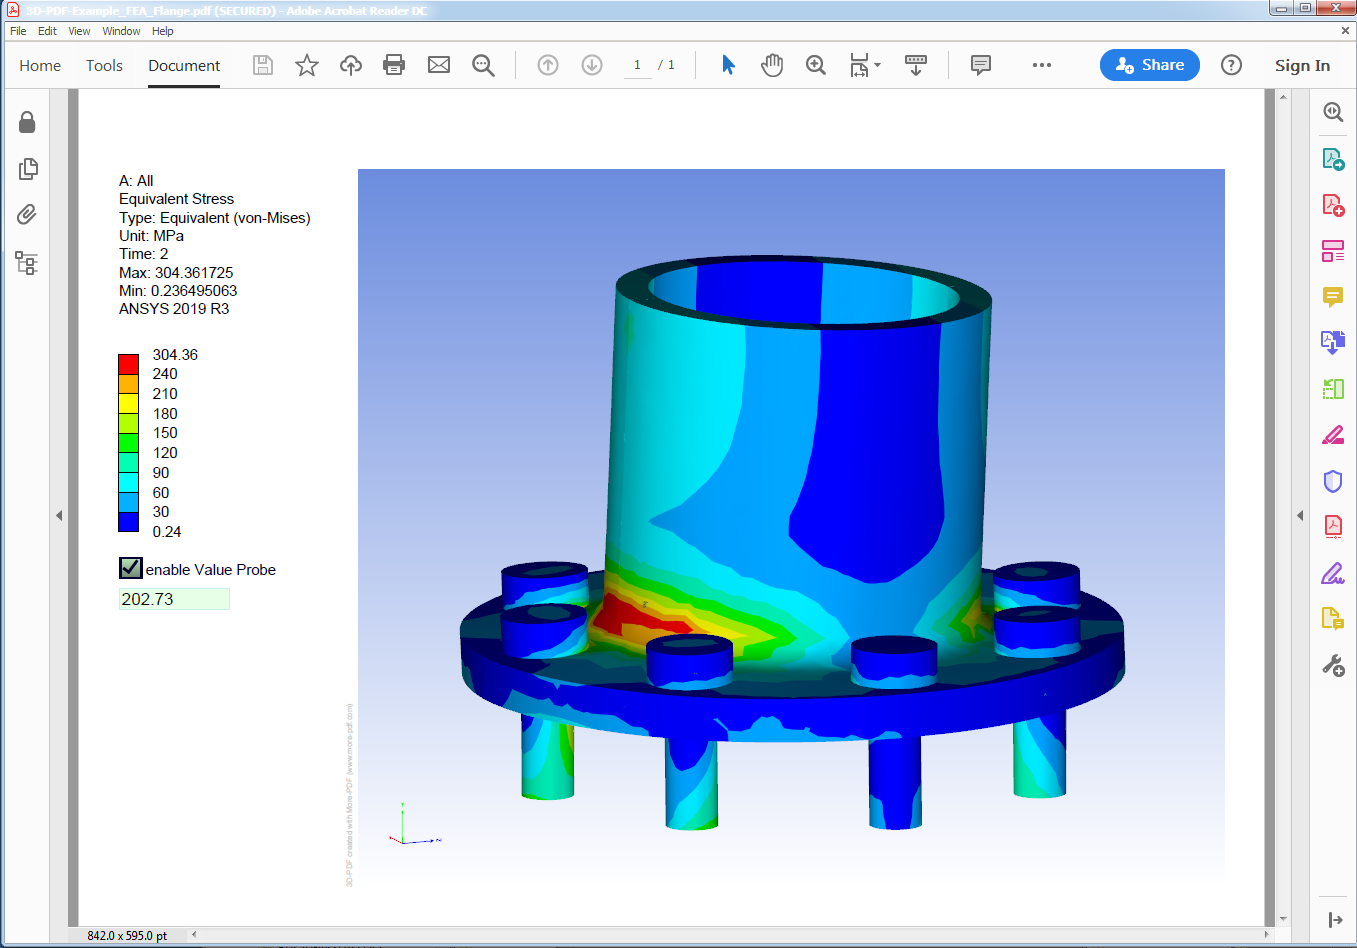 21D PDF Examples of Engineering Analysis, CAE, Simulation Results In Fea Report Template